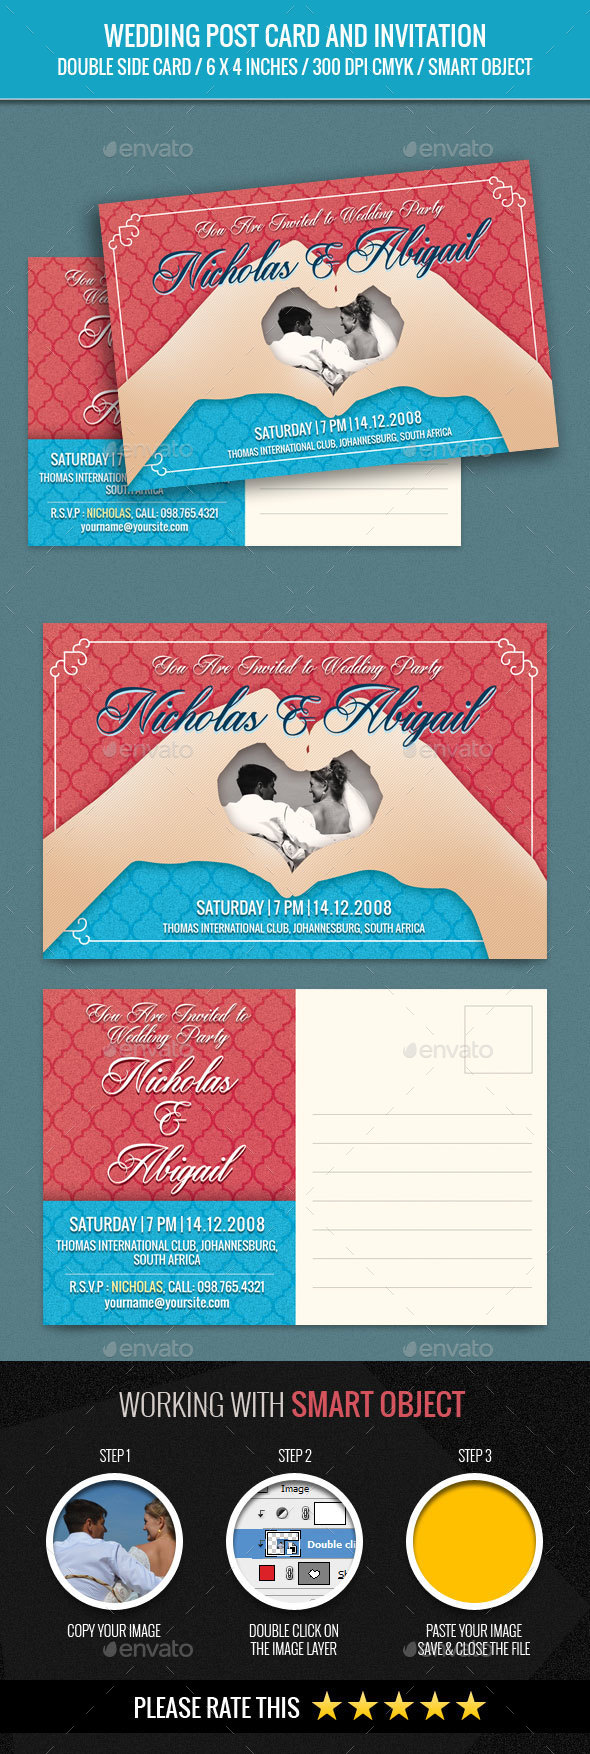 Wedding Invitation Post Card Template